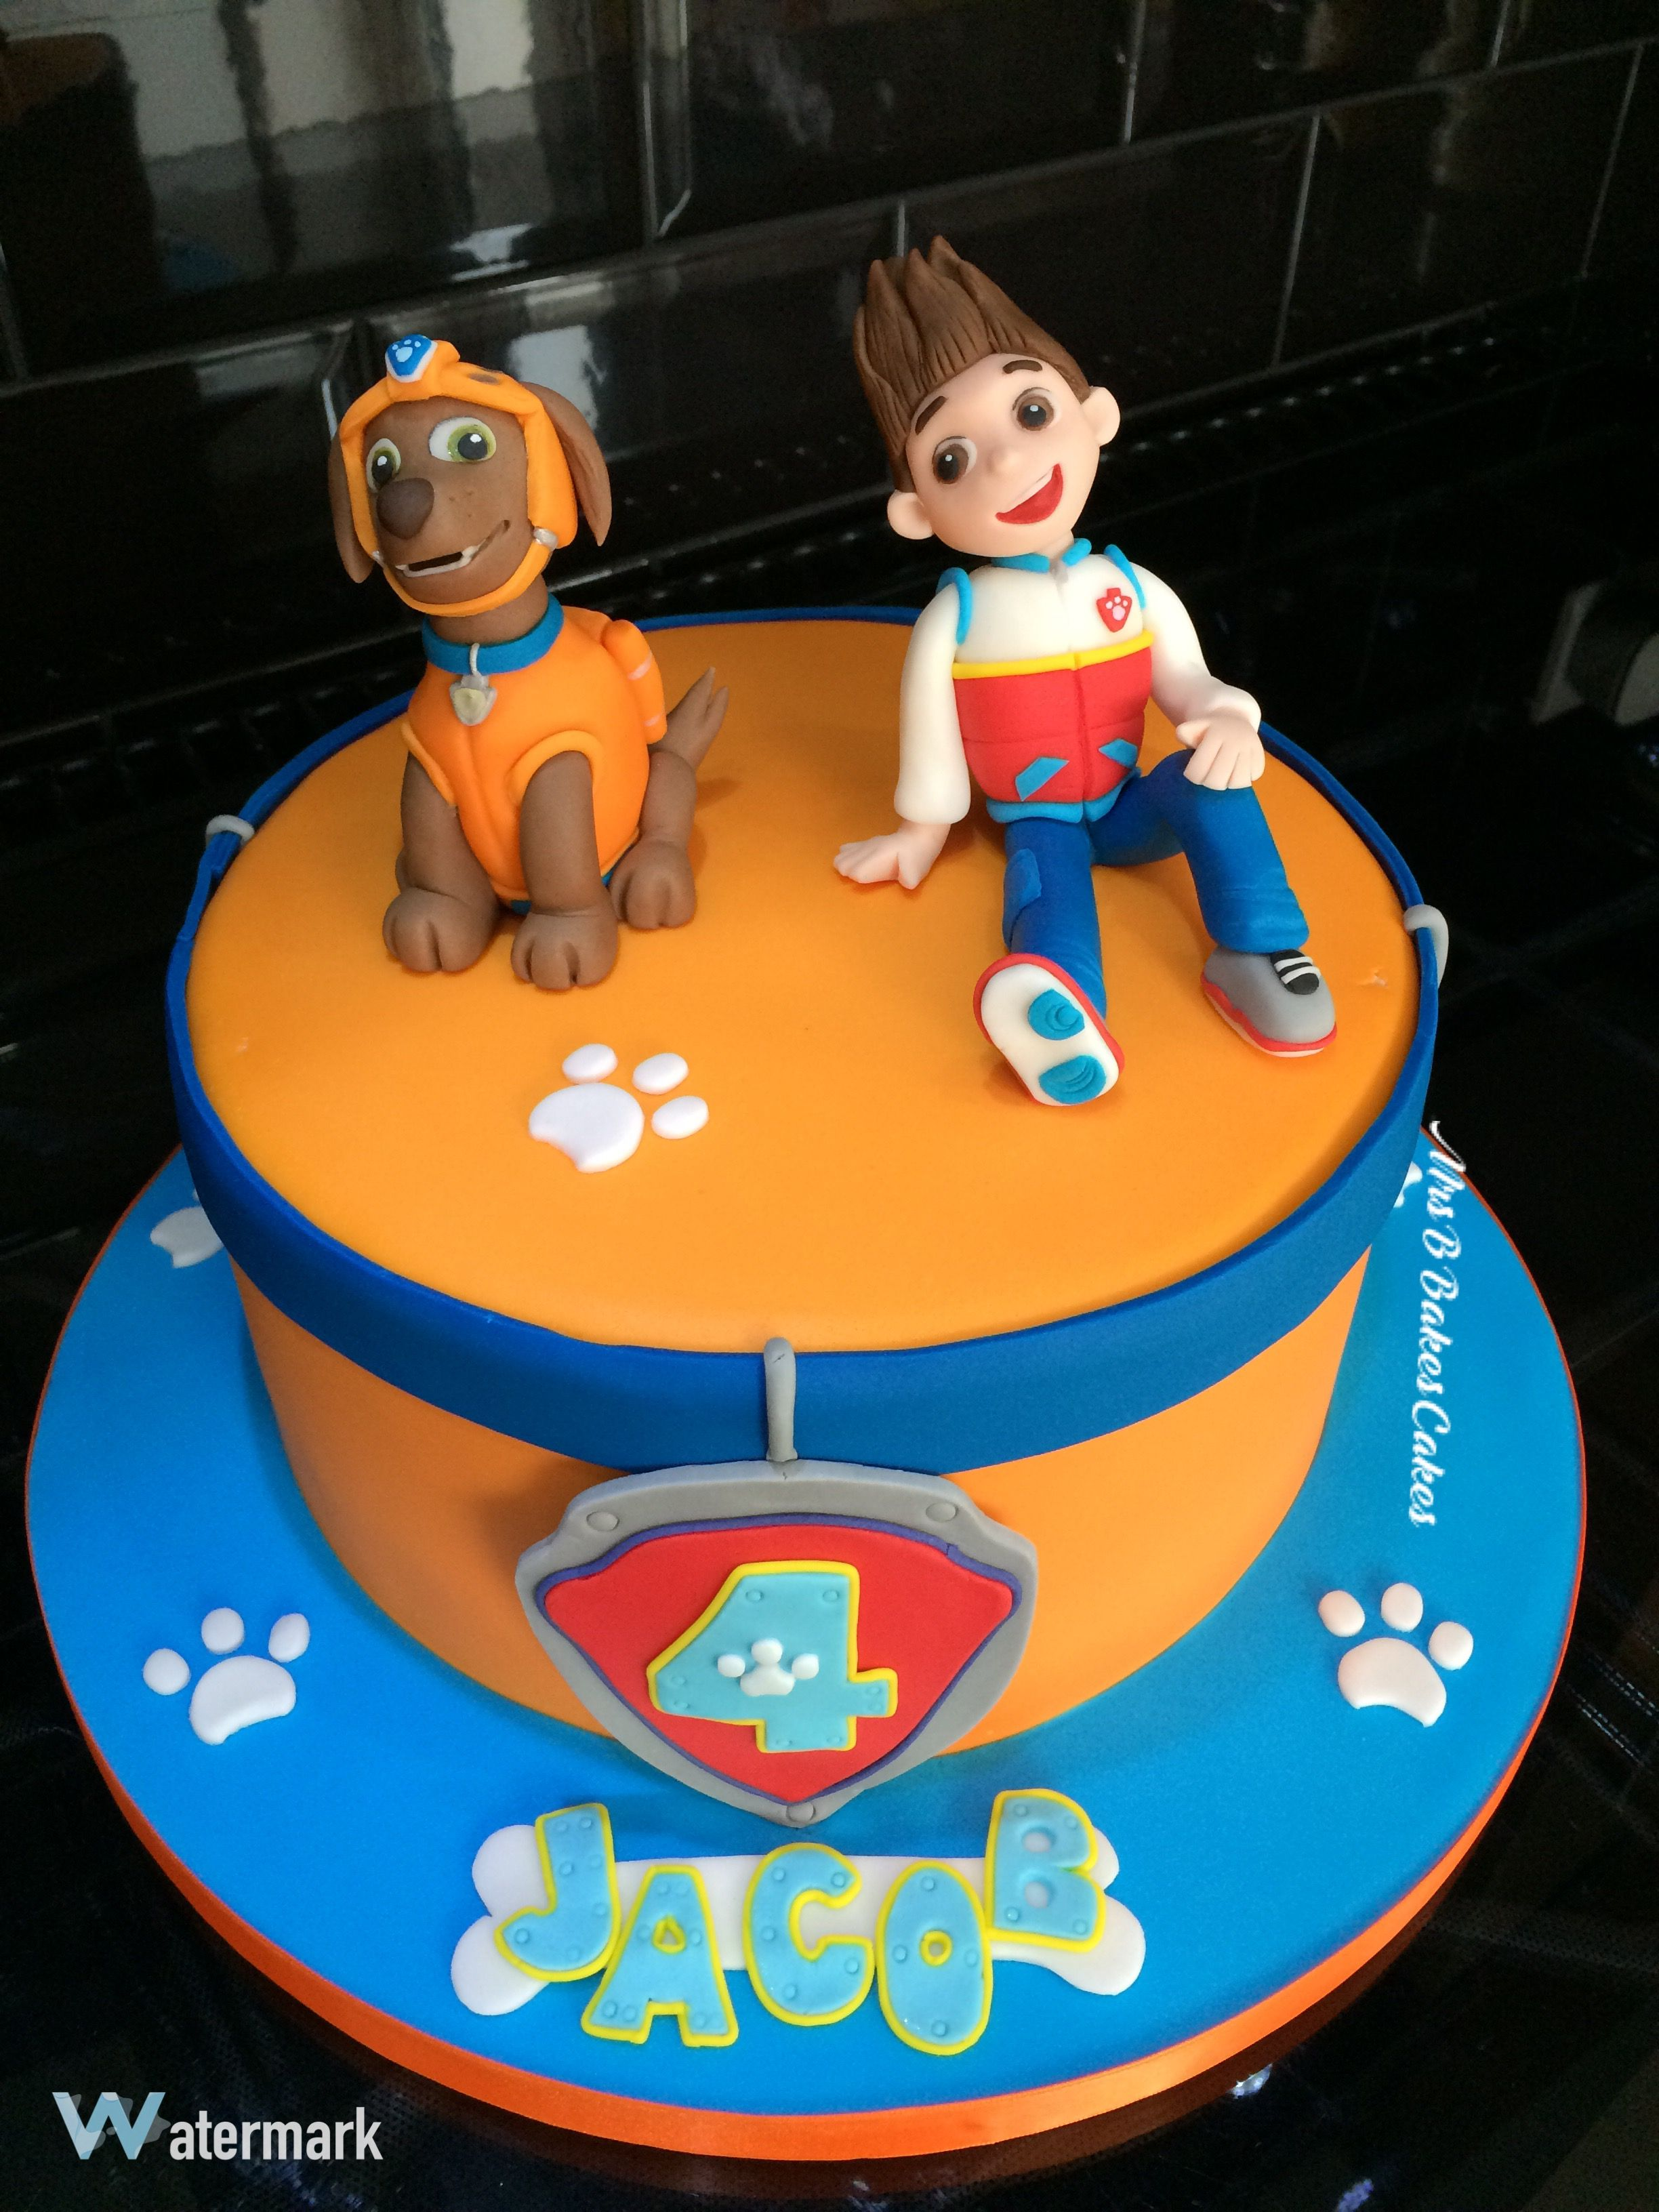 Paw Patrol Birthday Cake Zuma and Ryder with Paw Prints and Dog Collar. Entirely handcrafted sugarpaste cake toppers, chocolate cake with whipped vanillabean buttercream.  2016 made in Mrs B's Bespoke Cakes kitchen Saltaire - West Yorkshire - UK   https://mrs-bs.co.uk/ https://www.facebook.com/mrsbcakeologist/